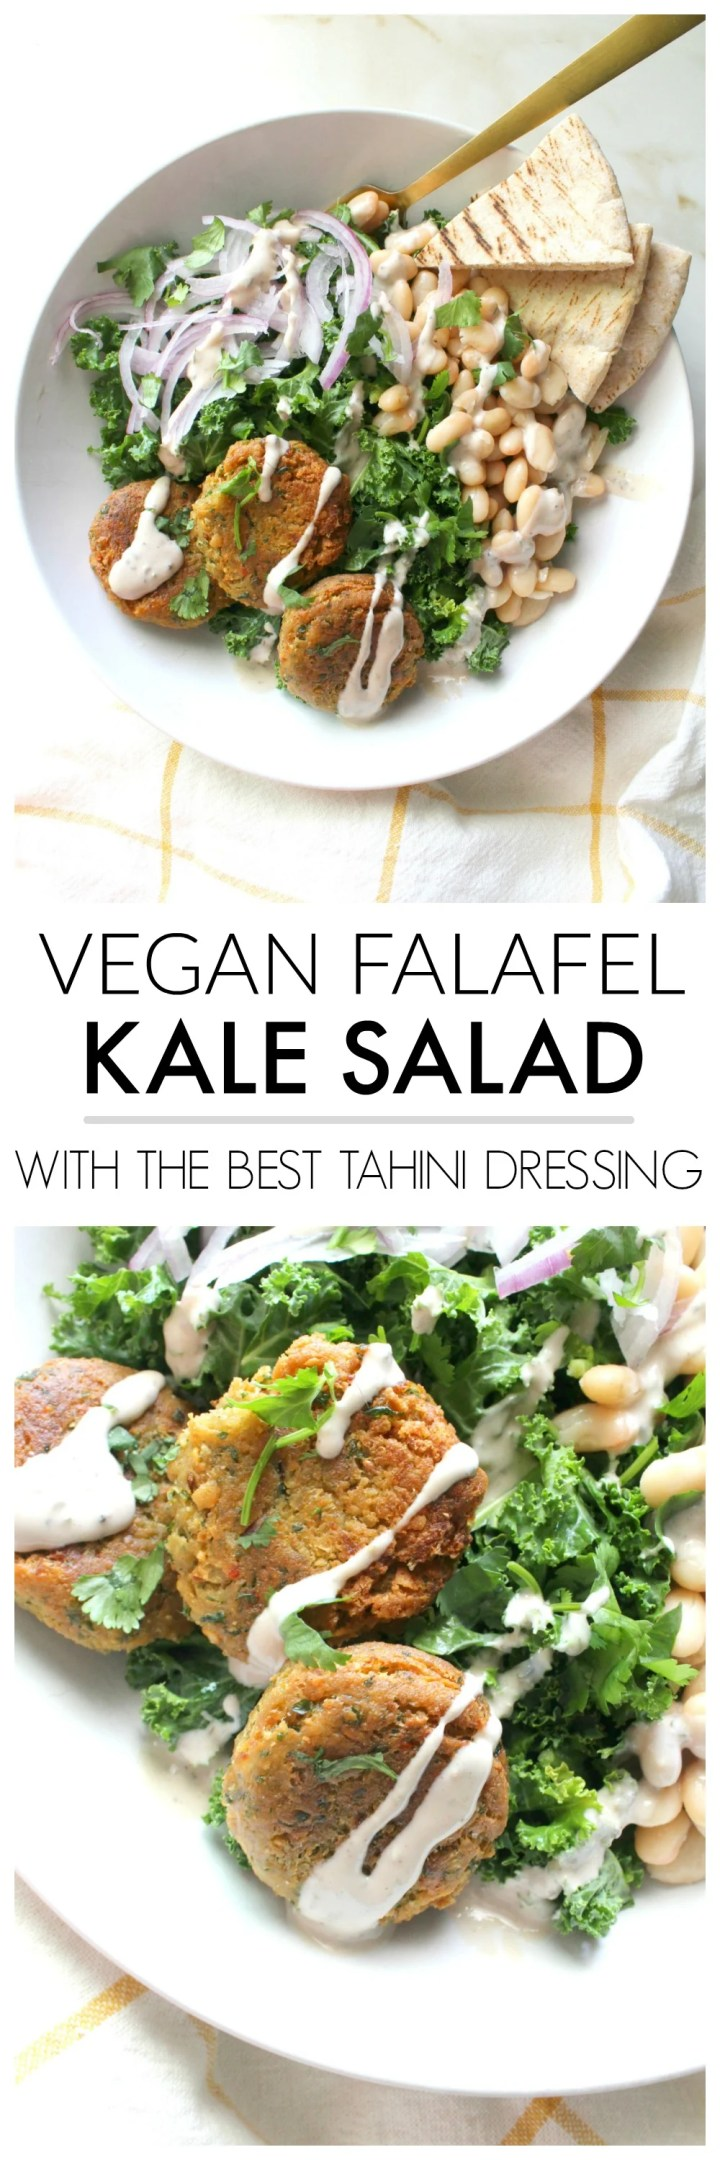 ThisFalafel Kale Salad with The Best Tahini Dressing is going to be your new go-to meal. Filled with healthy veggies, great flavors and a creamy oil-free dressing that is delish | ThisSavoryVegan.com #thissavoryvegan #healthy #salad